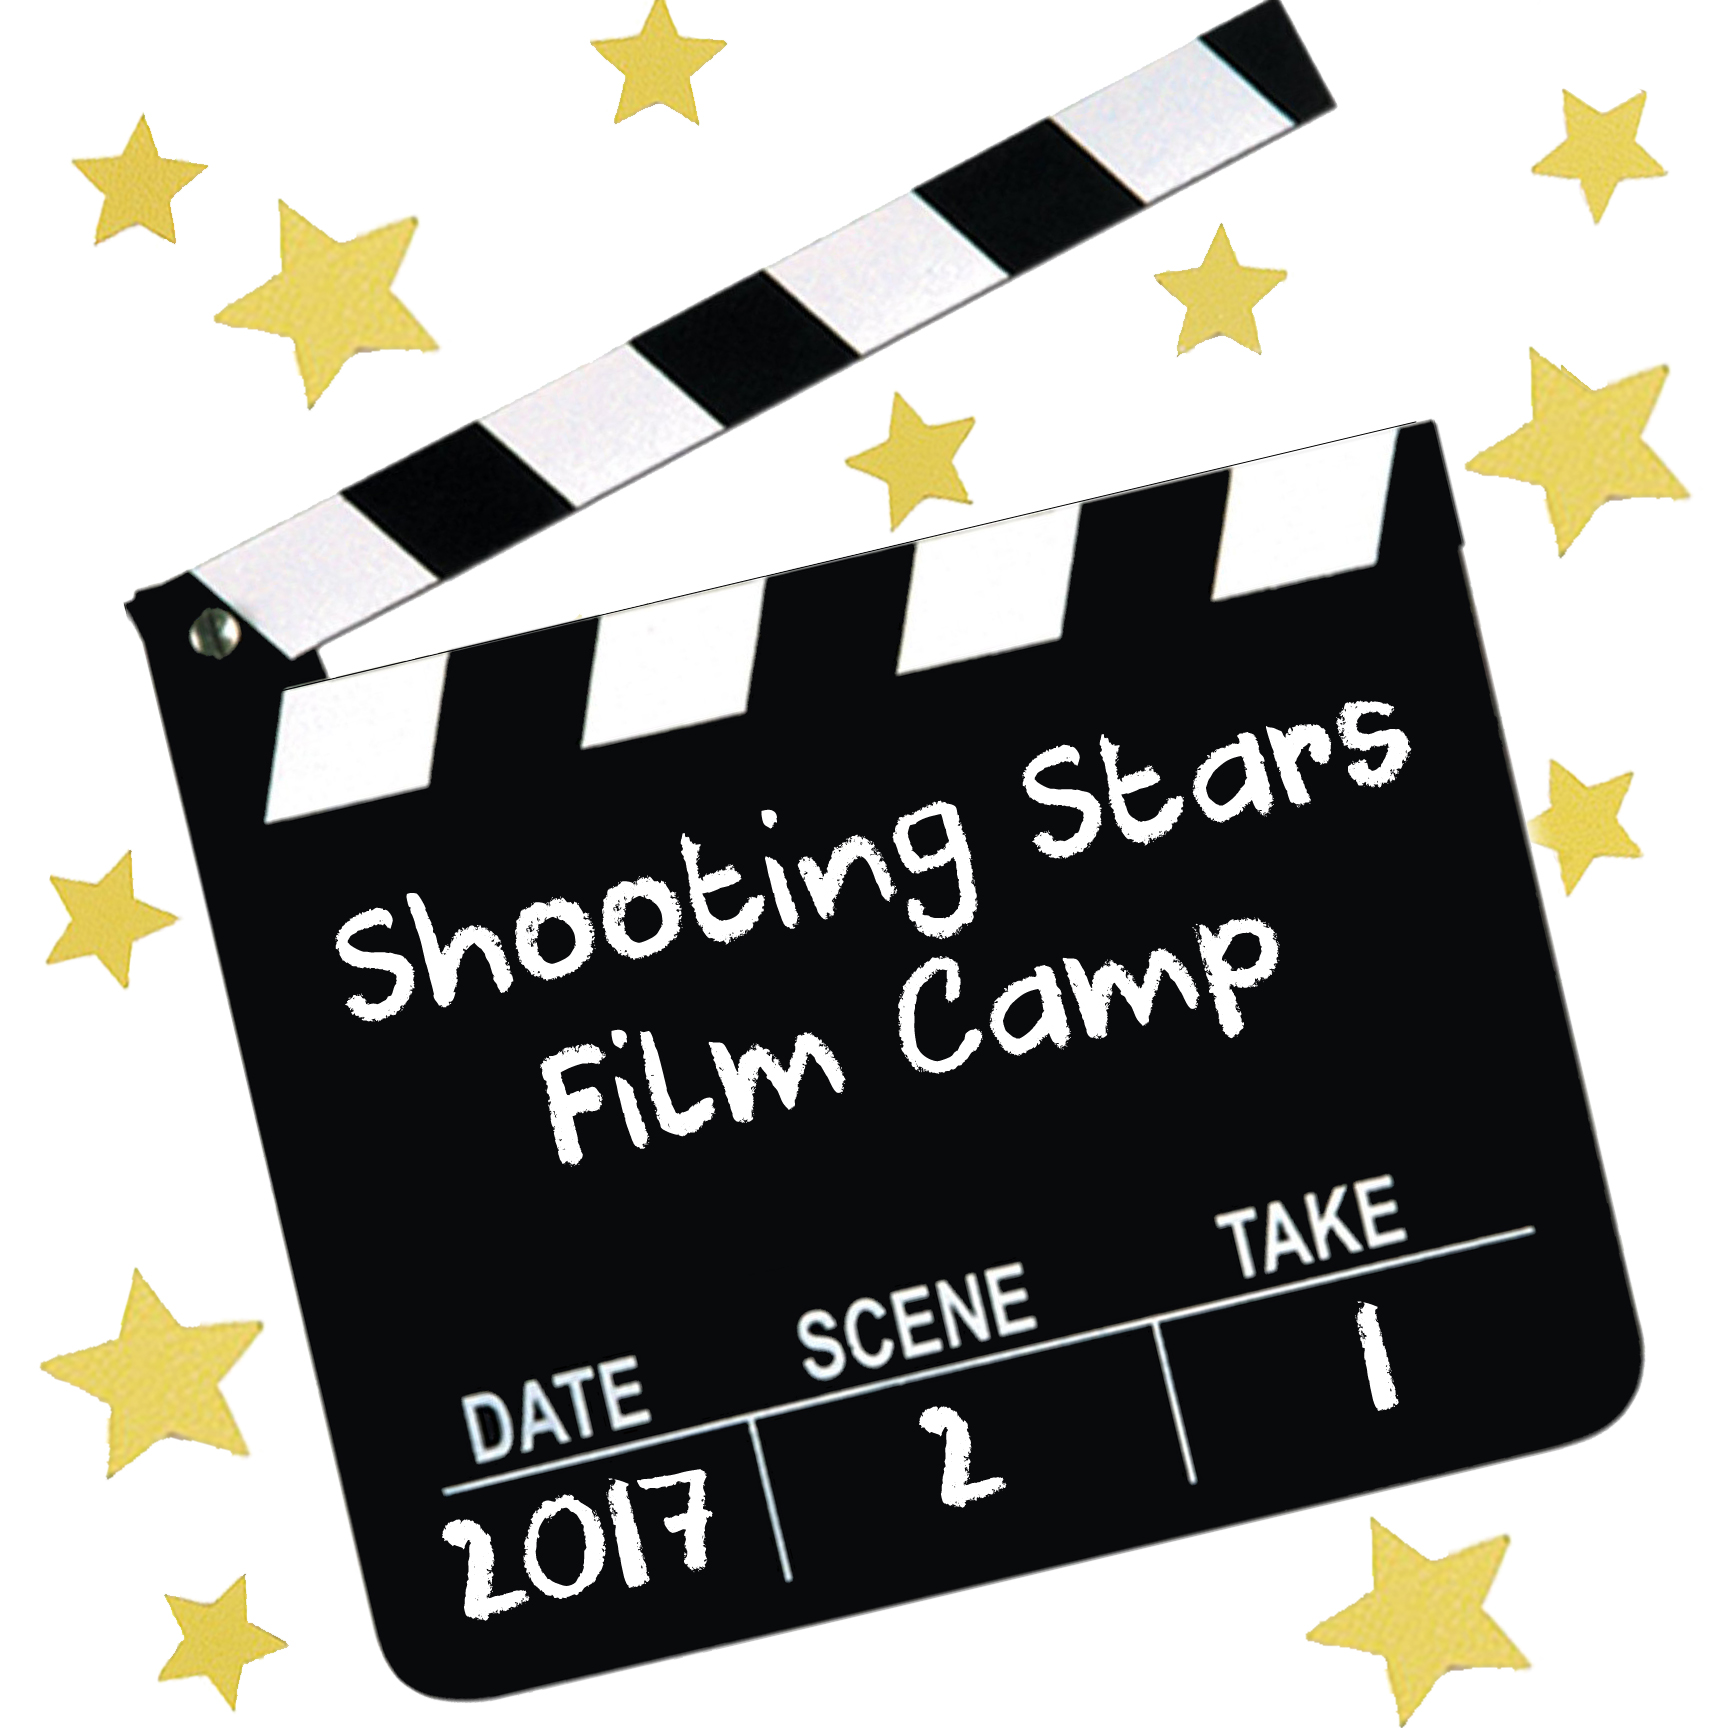 Shooting Stars Film Camp By GroundSwell Pictures